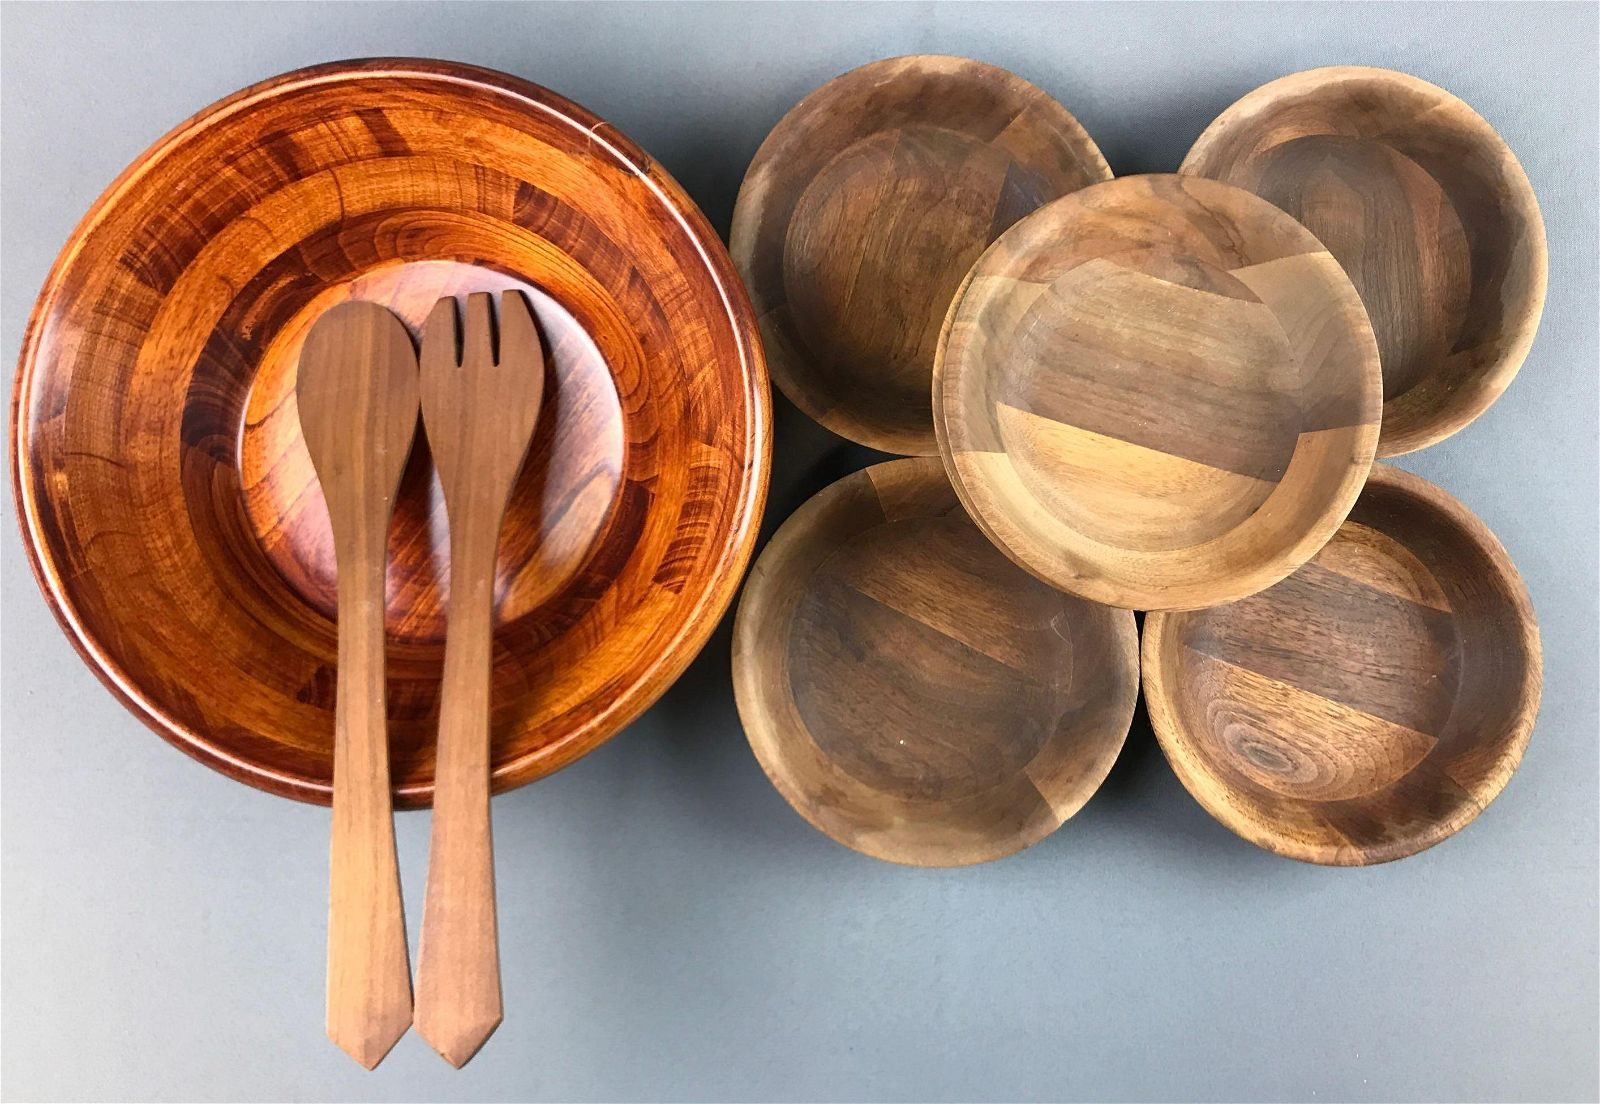 Group of 7 : Wooden Salad Bowls + Wooden Serving Pieces